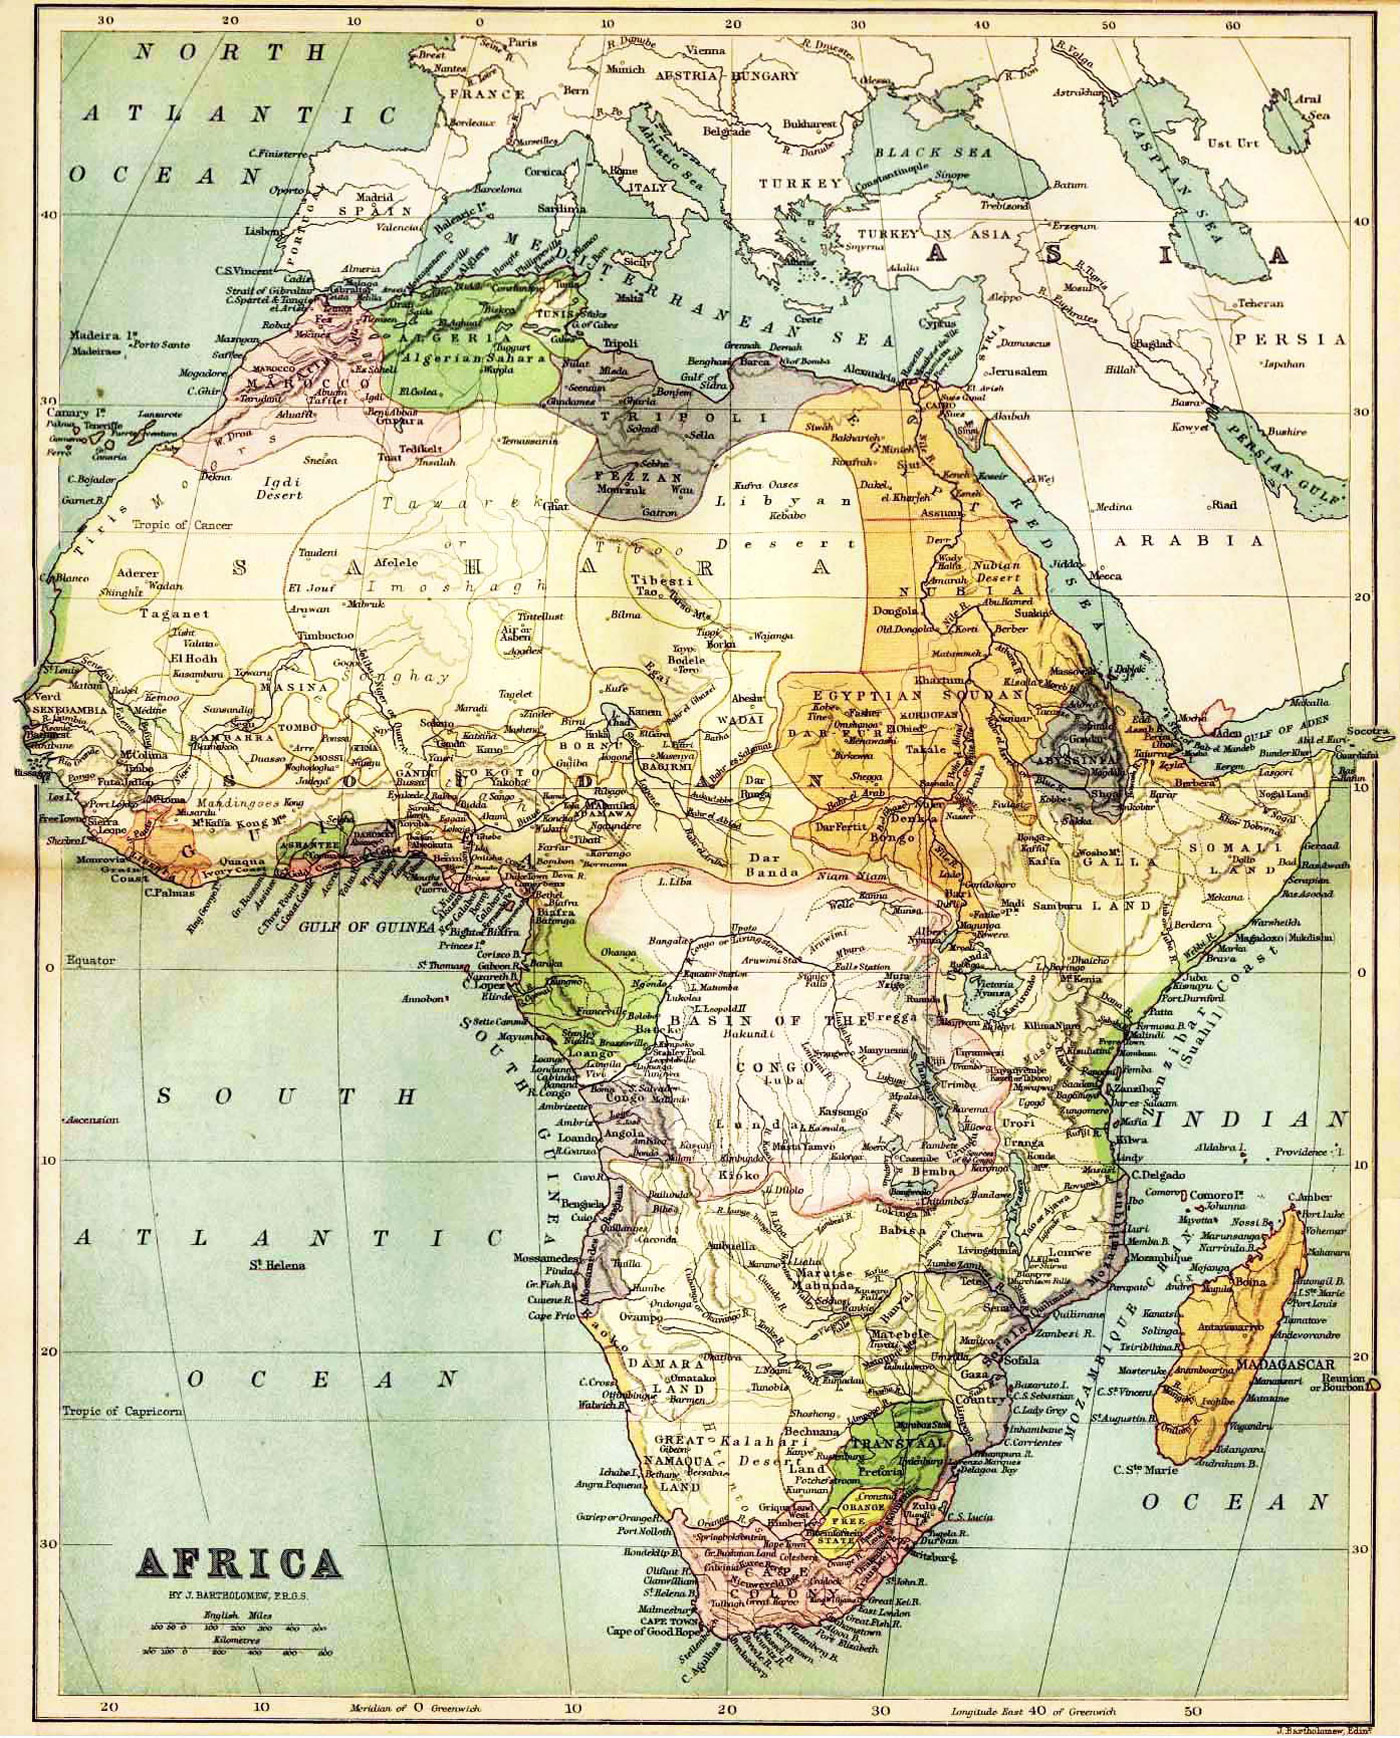 FileAfrican Map Jpg Wikimedia Commons - Map africa